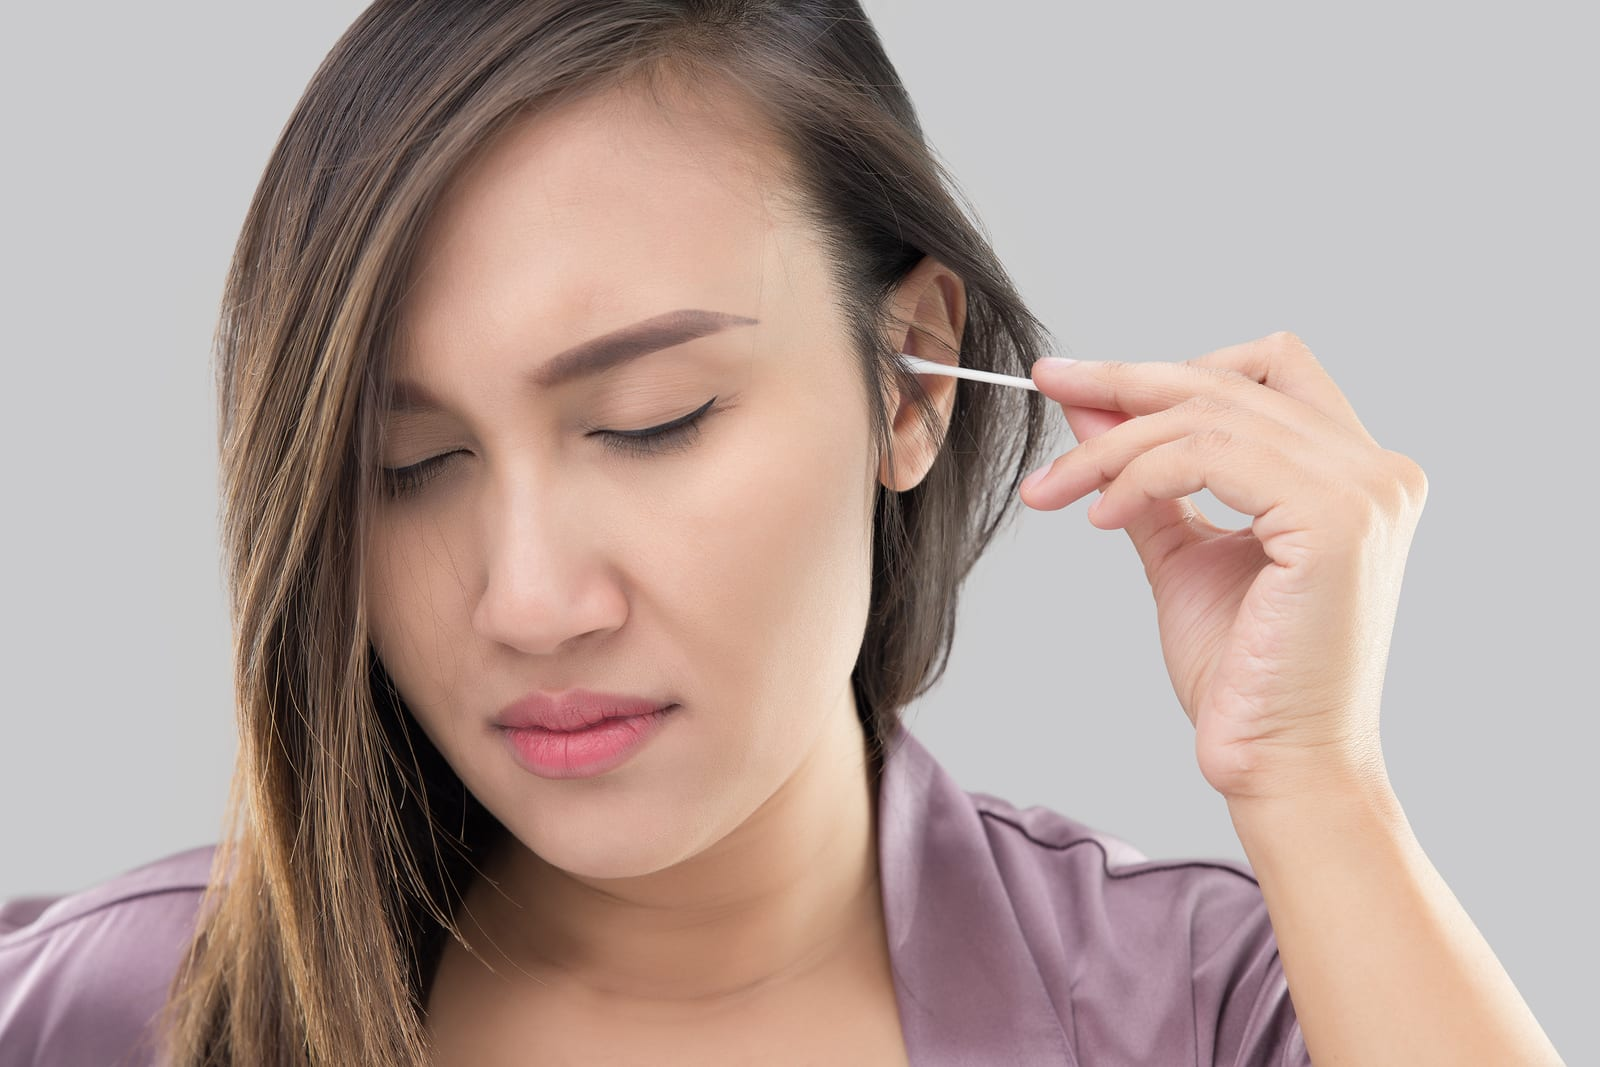 Is your ear care regime causing loss of hearing?